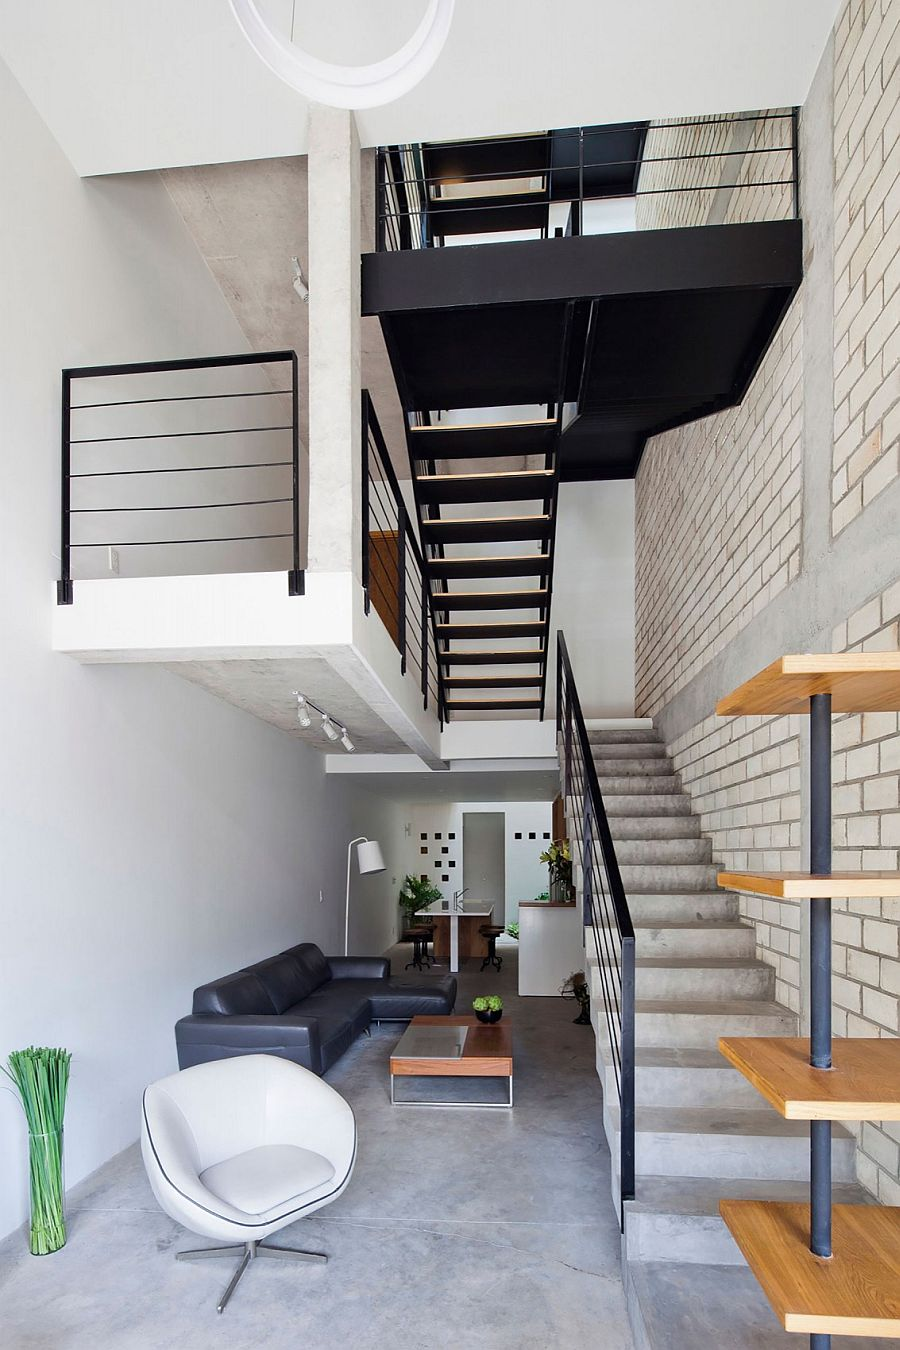 Contemporary and industrial styles come together at the 4-story Vietnam house